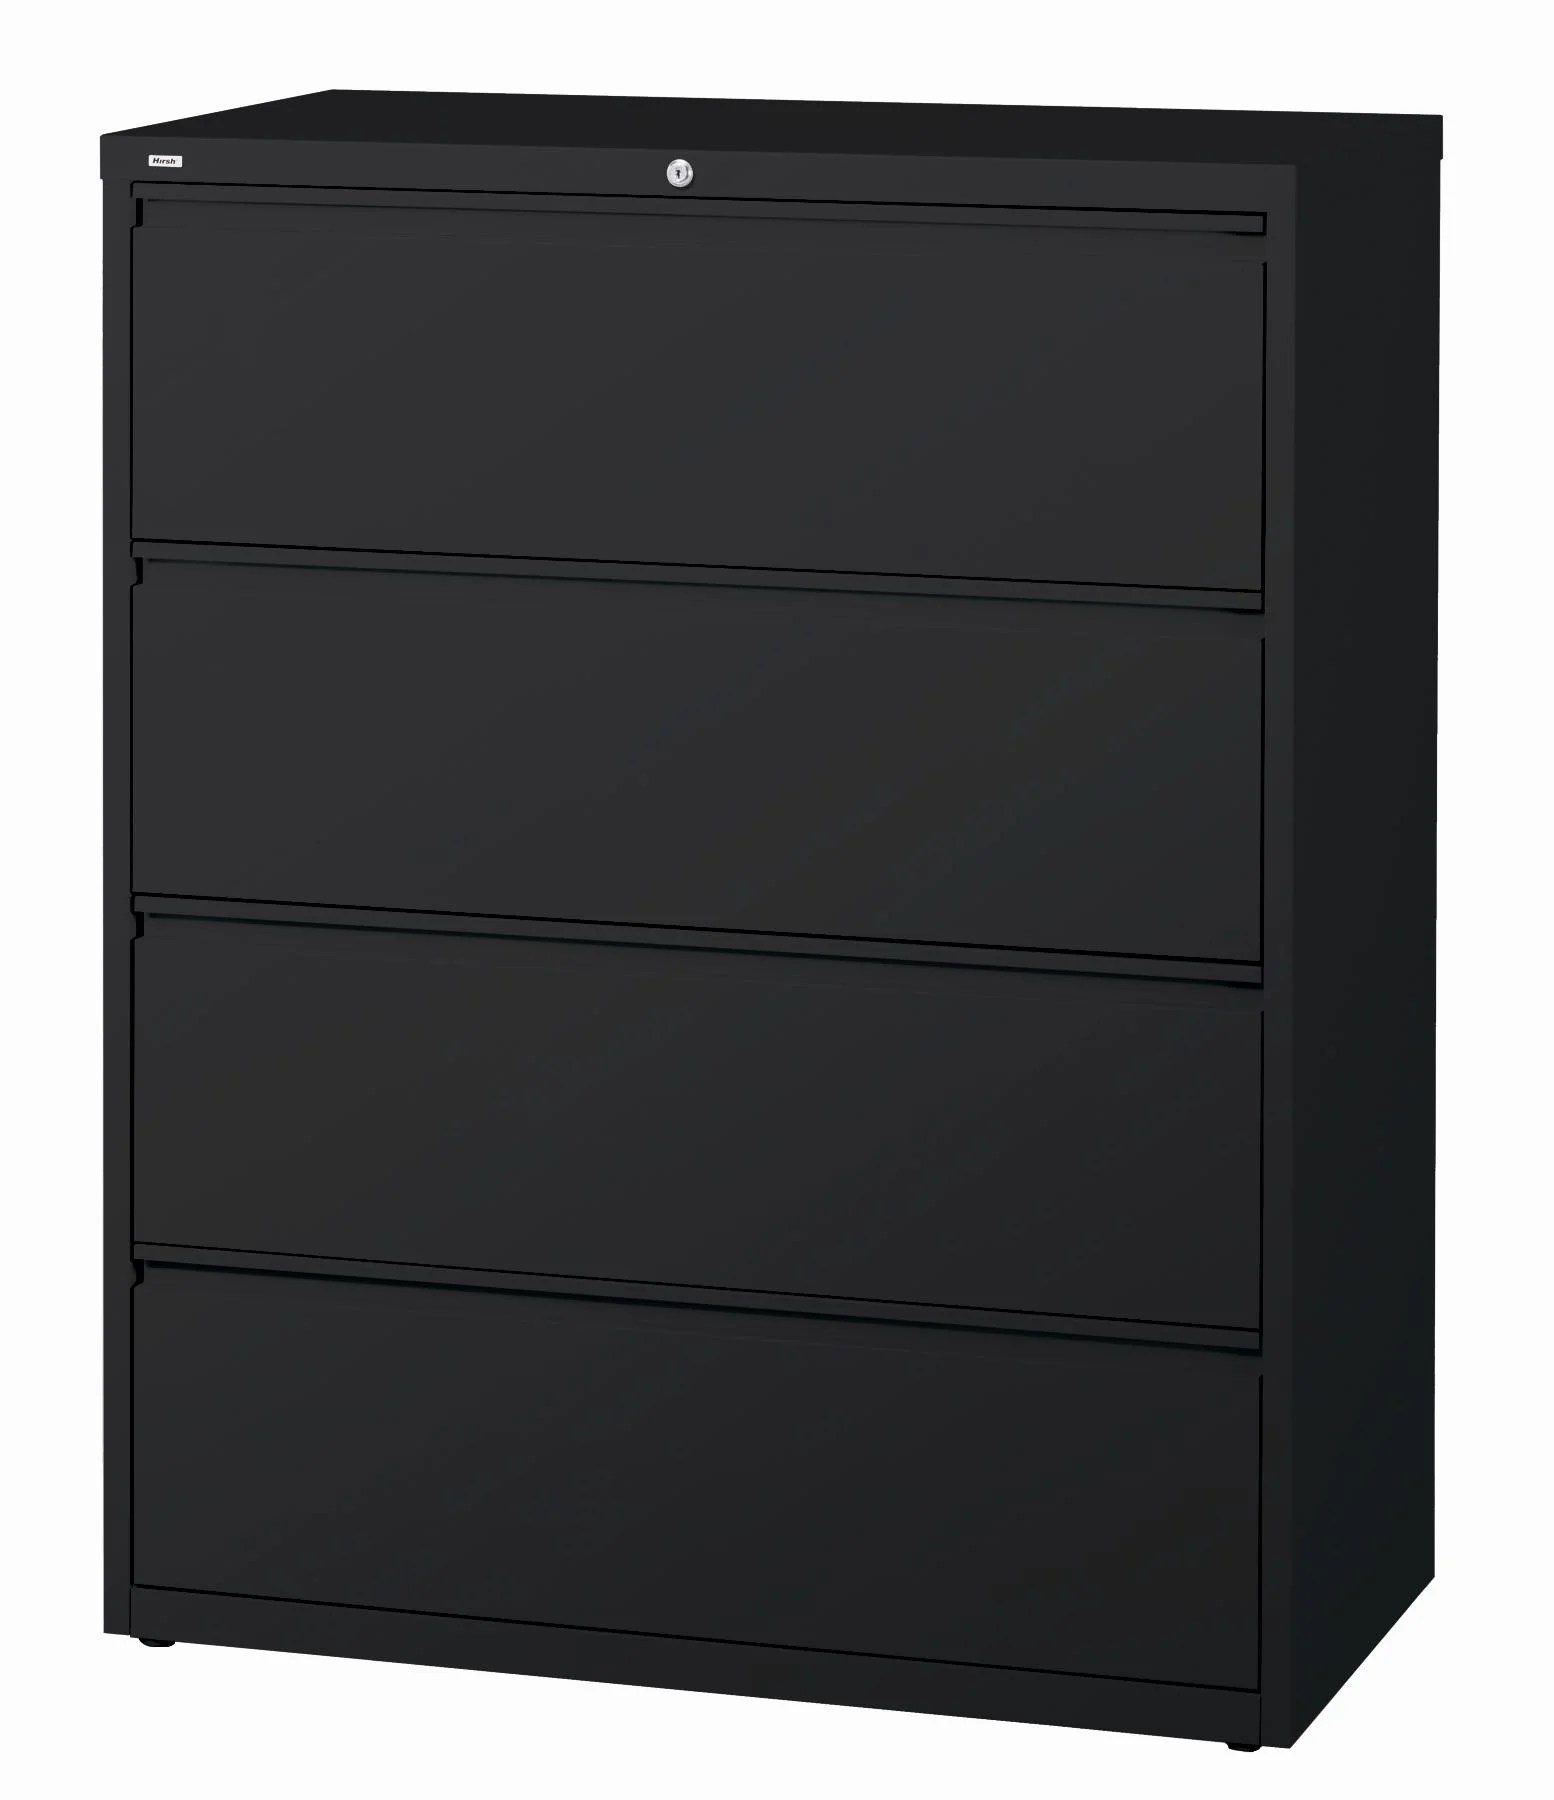 hirsch file cabinets 4 drawer  Home Decor